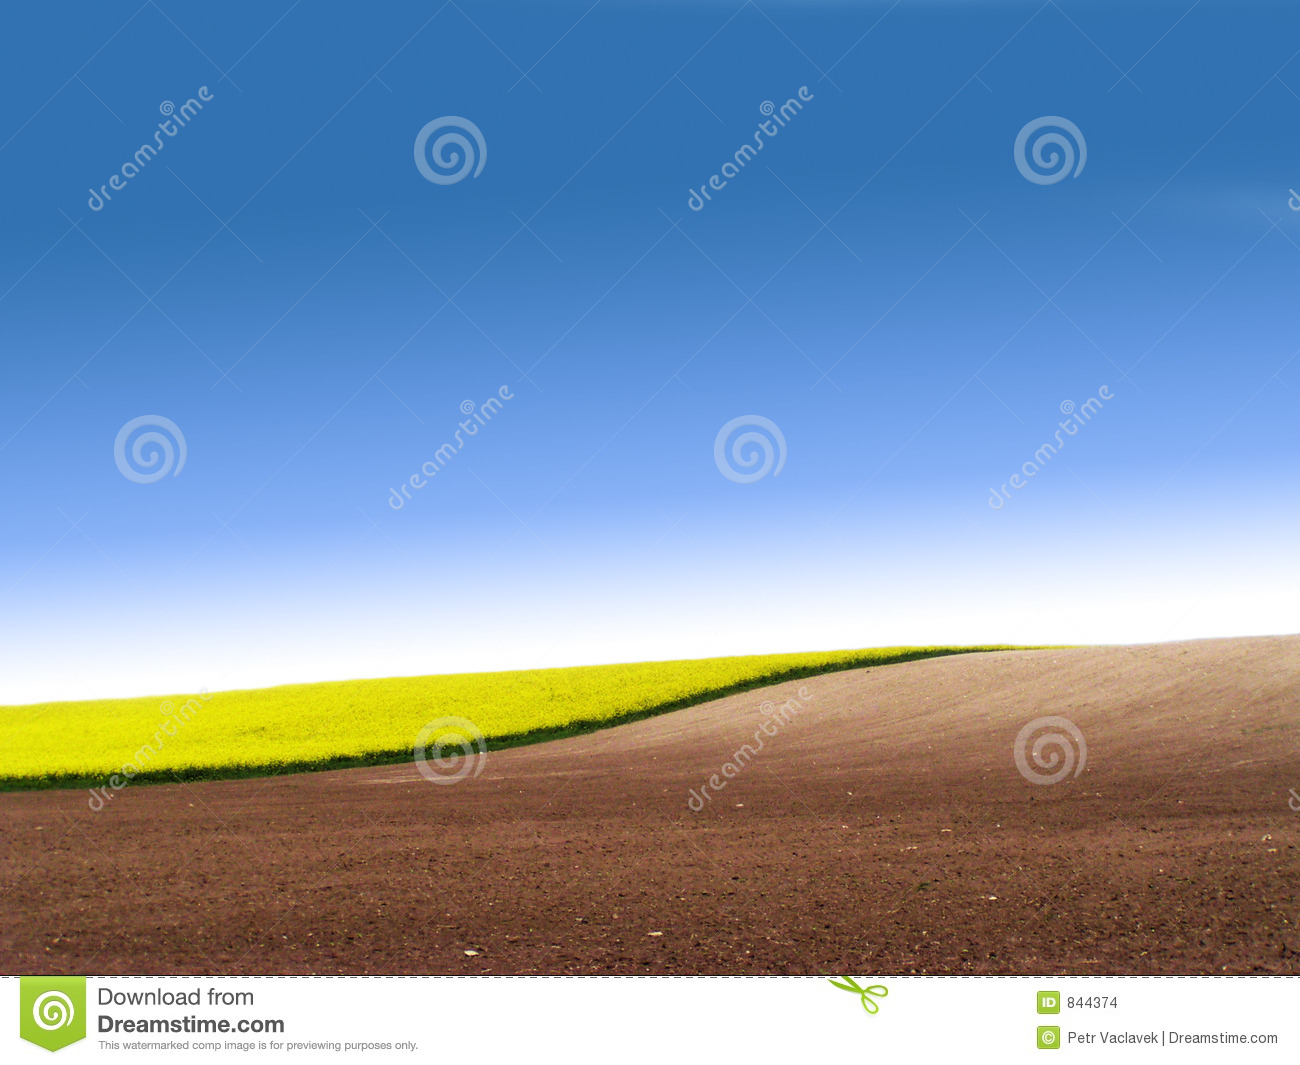 Partly ploughed field with